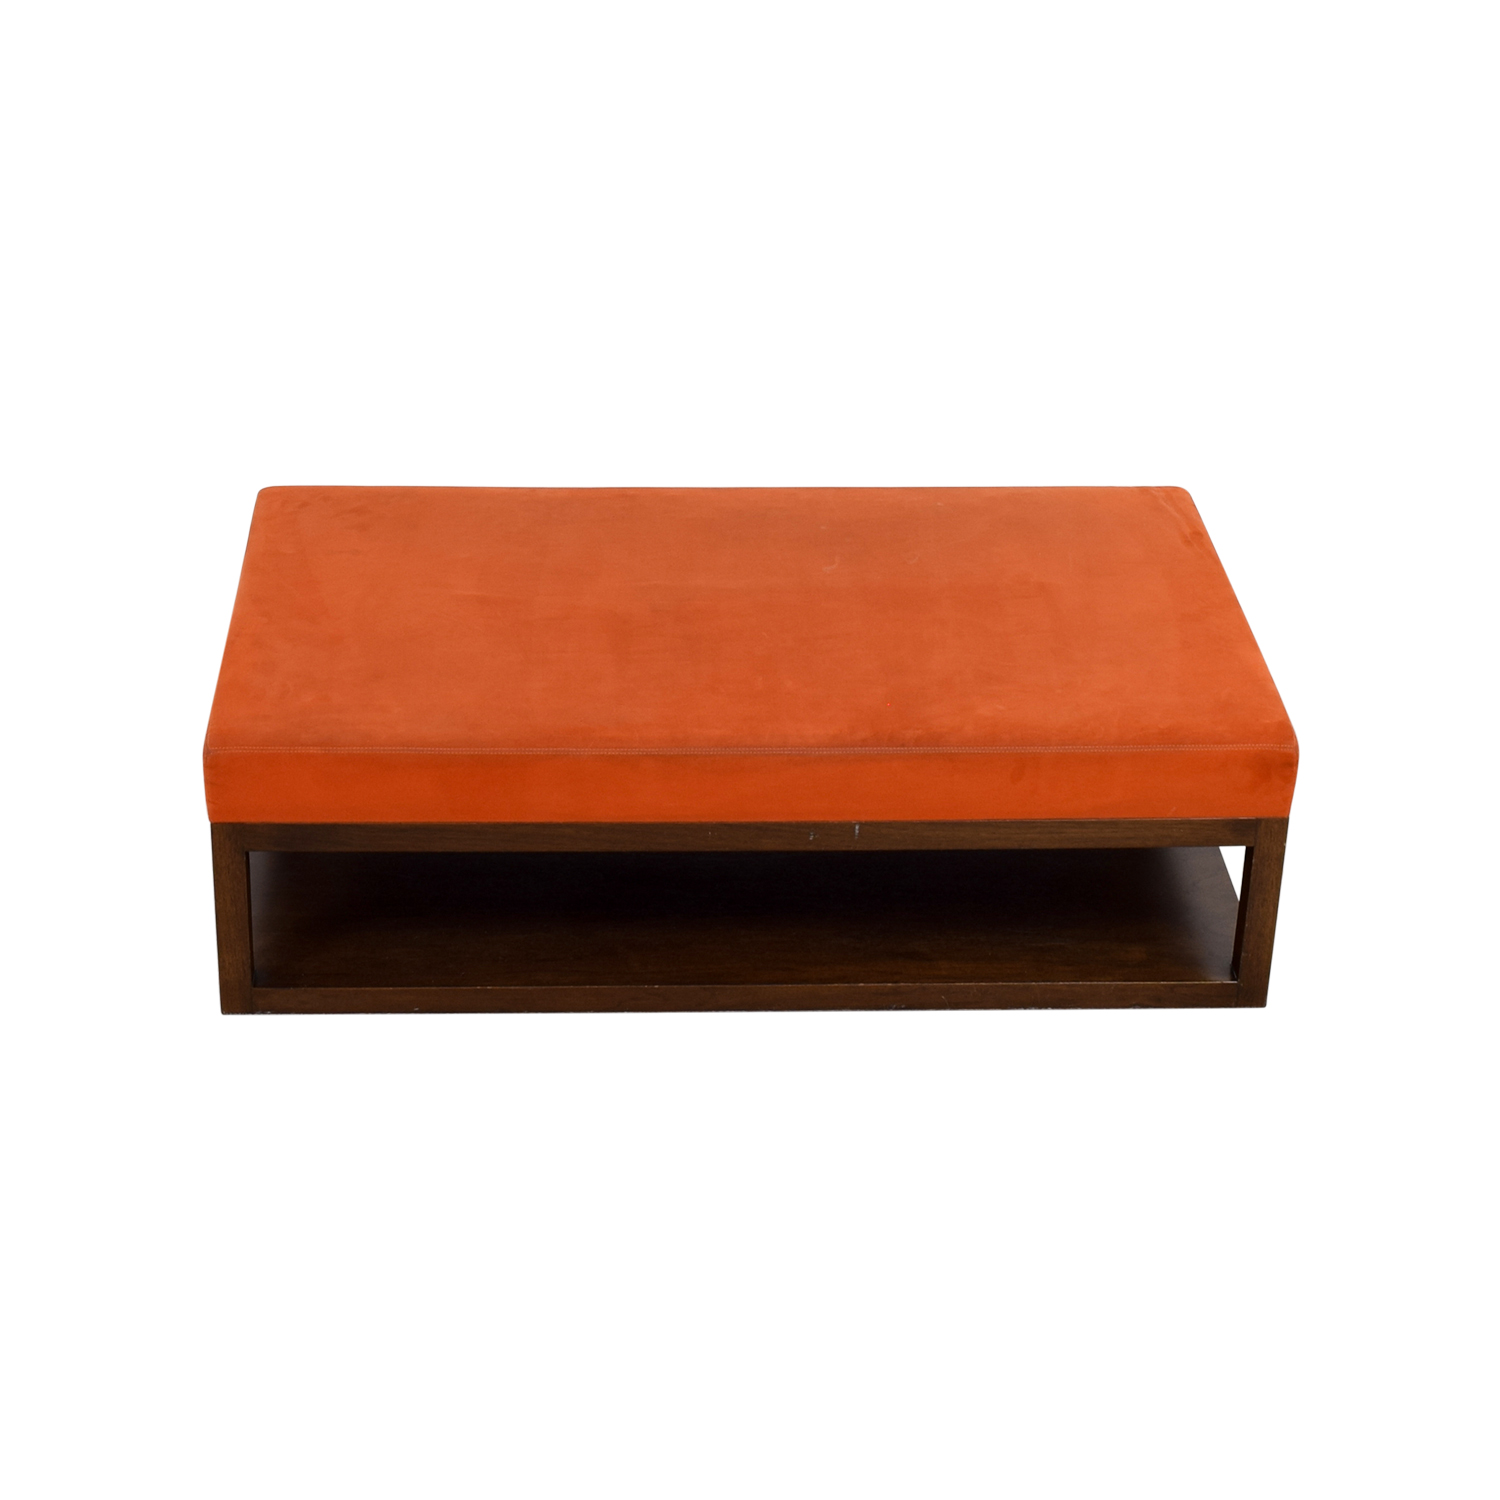 shop Custom Orange Ottoman with Wood Base on Casters Custom made Chairs